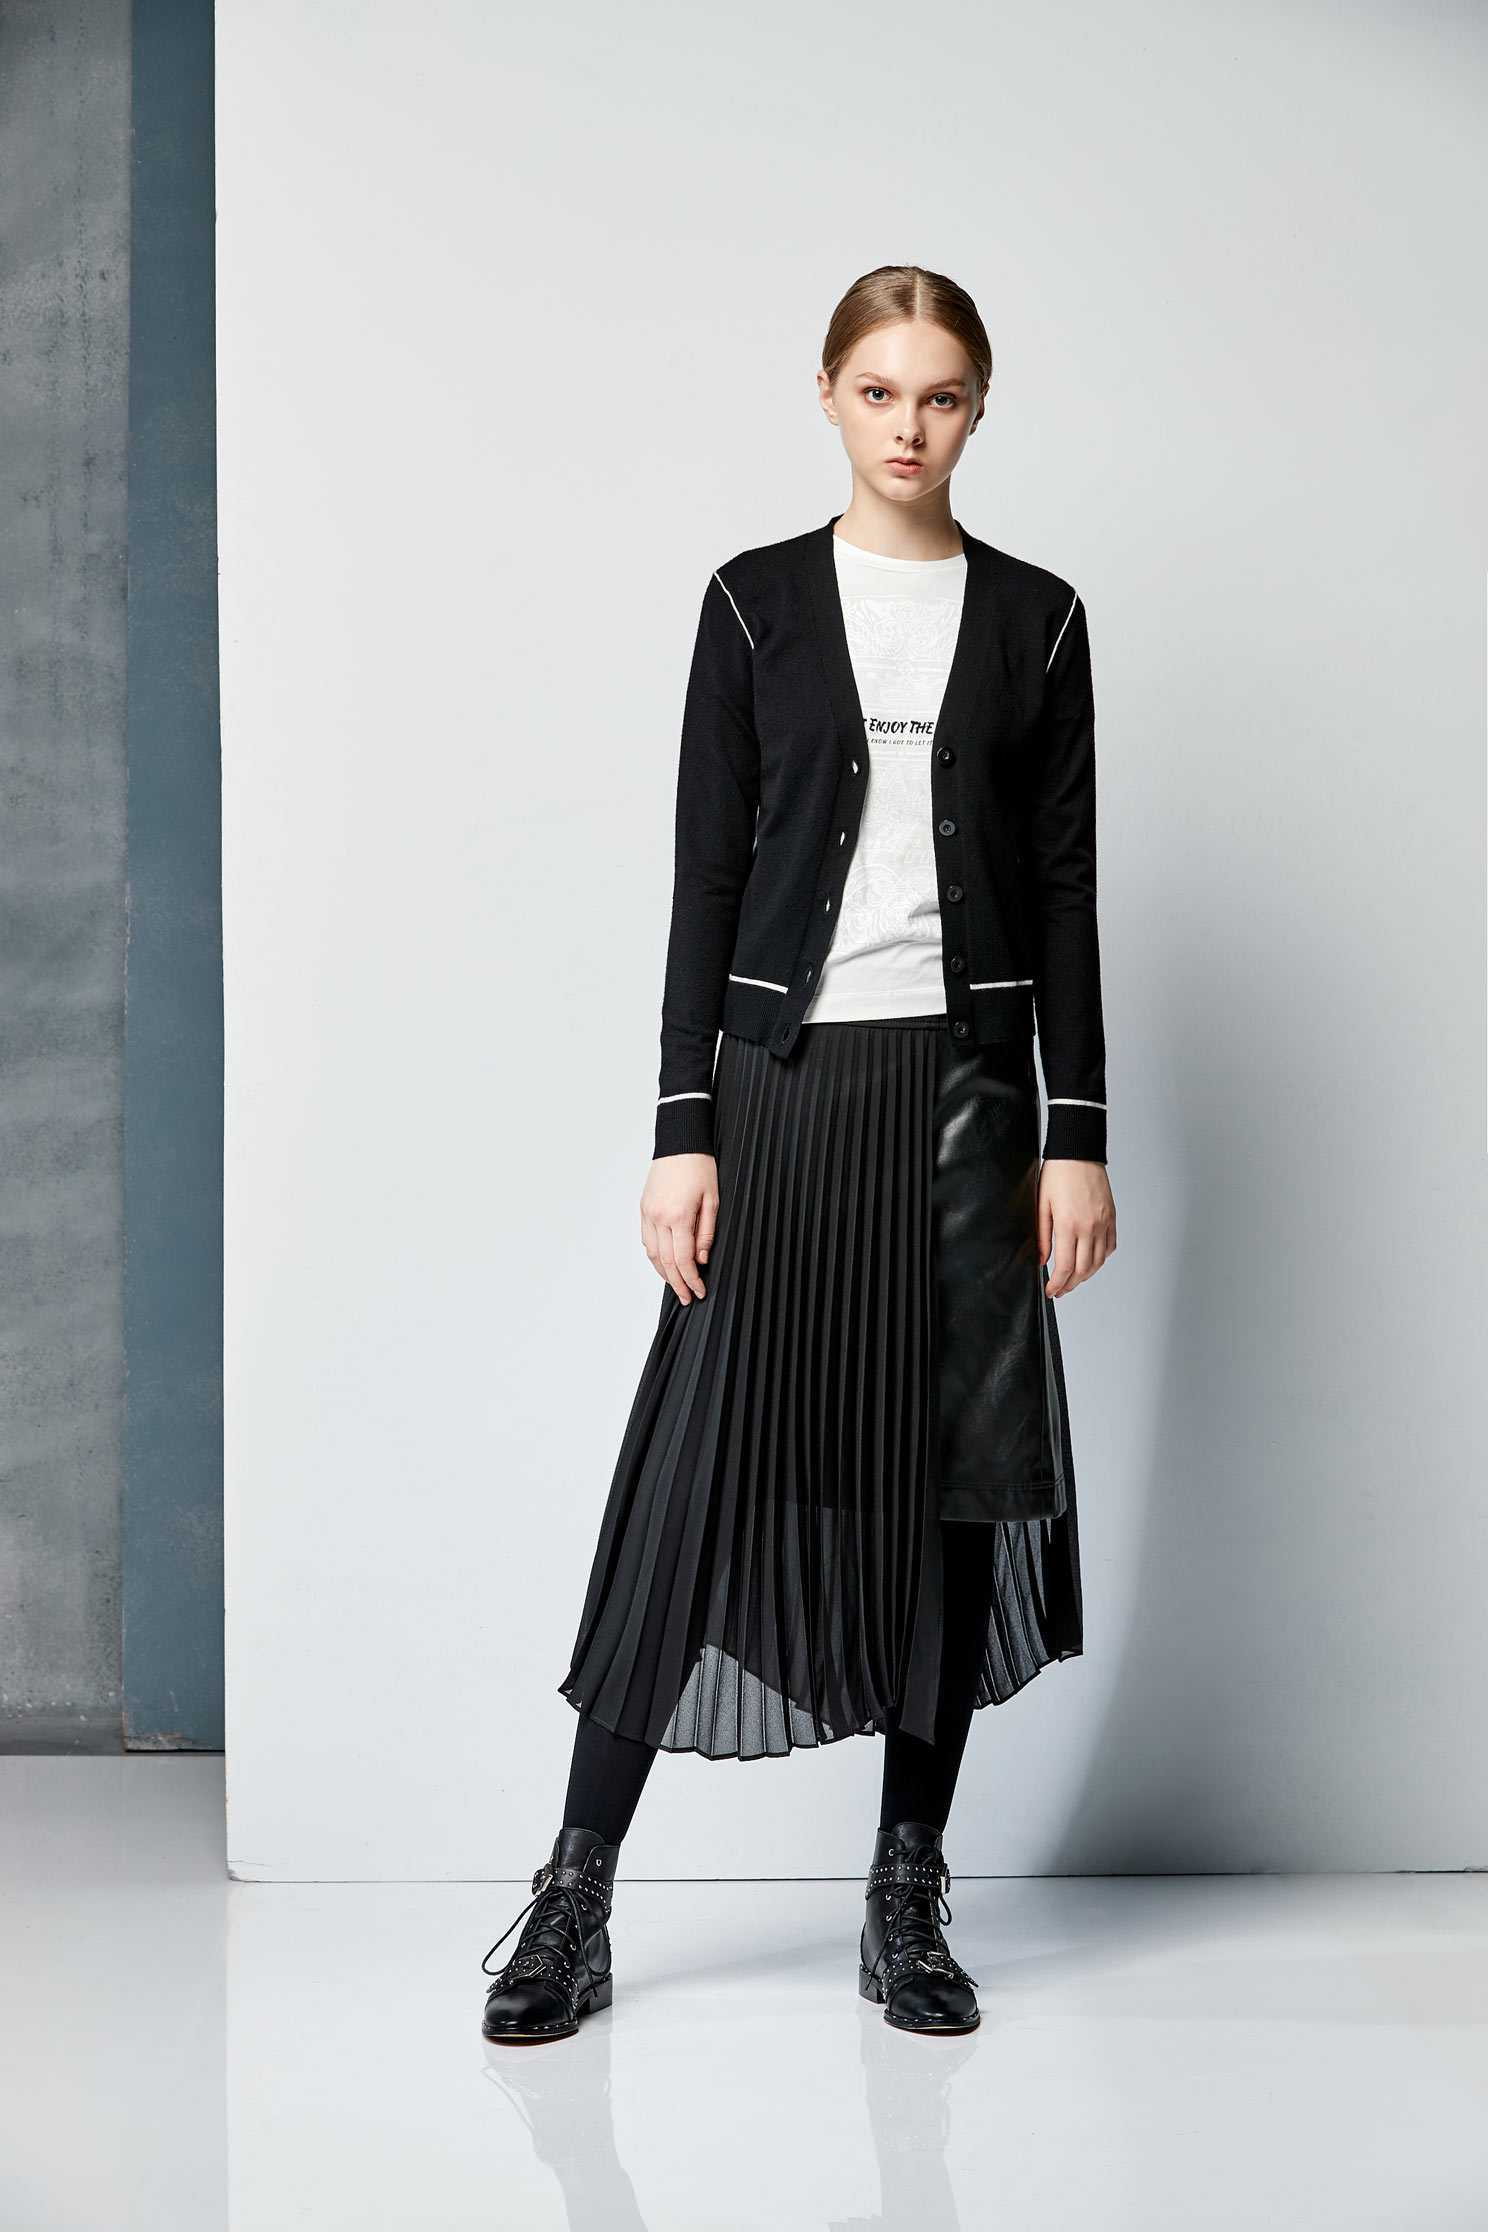 Leather mixed pleated skirt,百折,Pleated Skirt,Maxi Pleated Skirt,皮革,Long Skirt,Chiffon,Chiffon Skirt,Chiffon Long skirts,黑色裙子